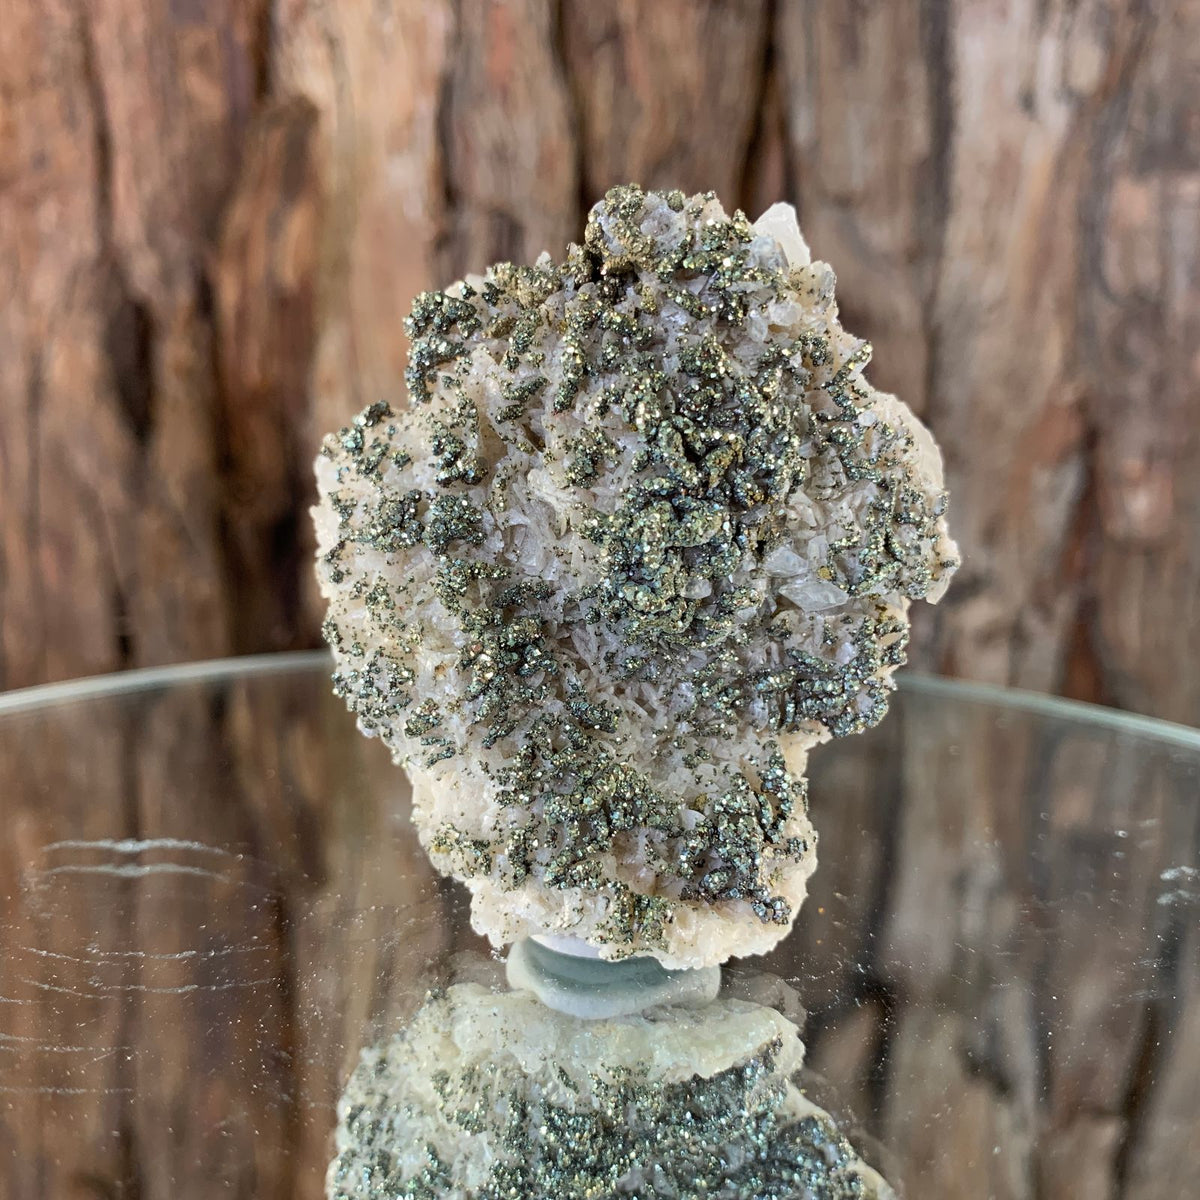 5cm 82g Pyrite and Dolomite, Clear Calcite from China